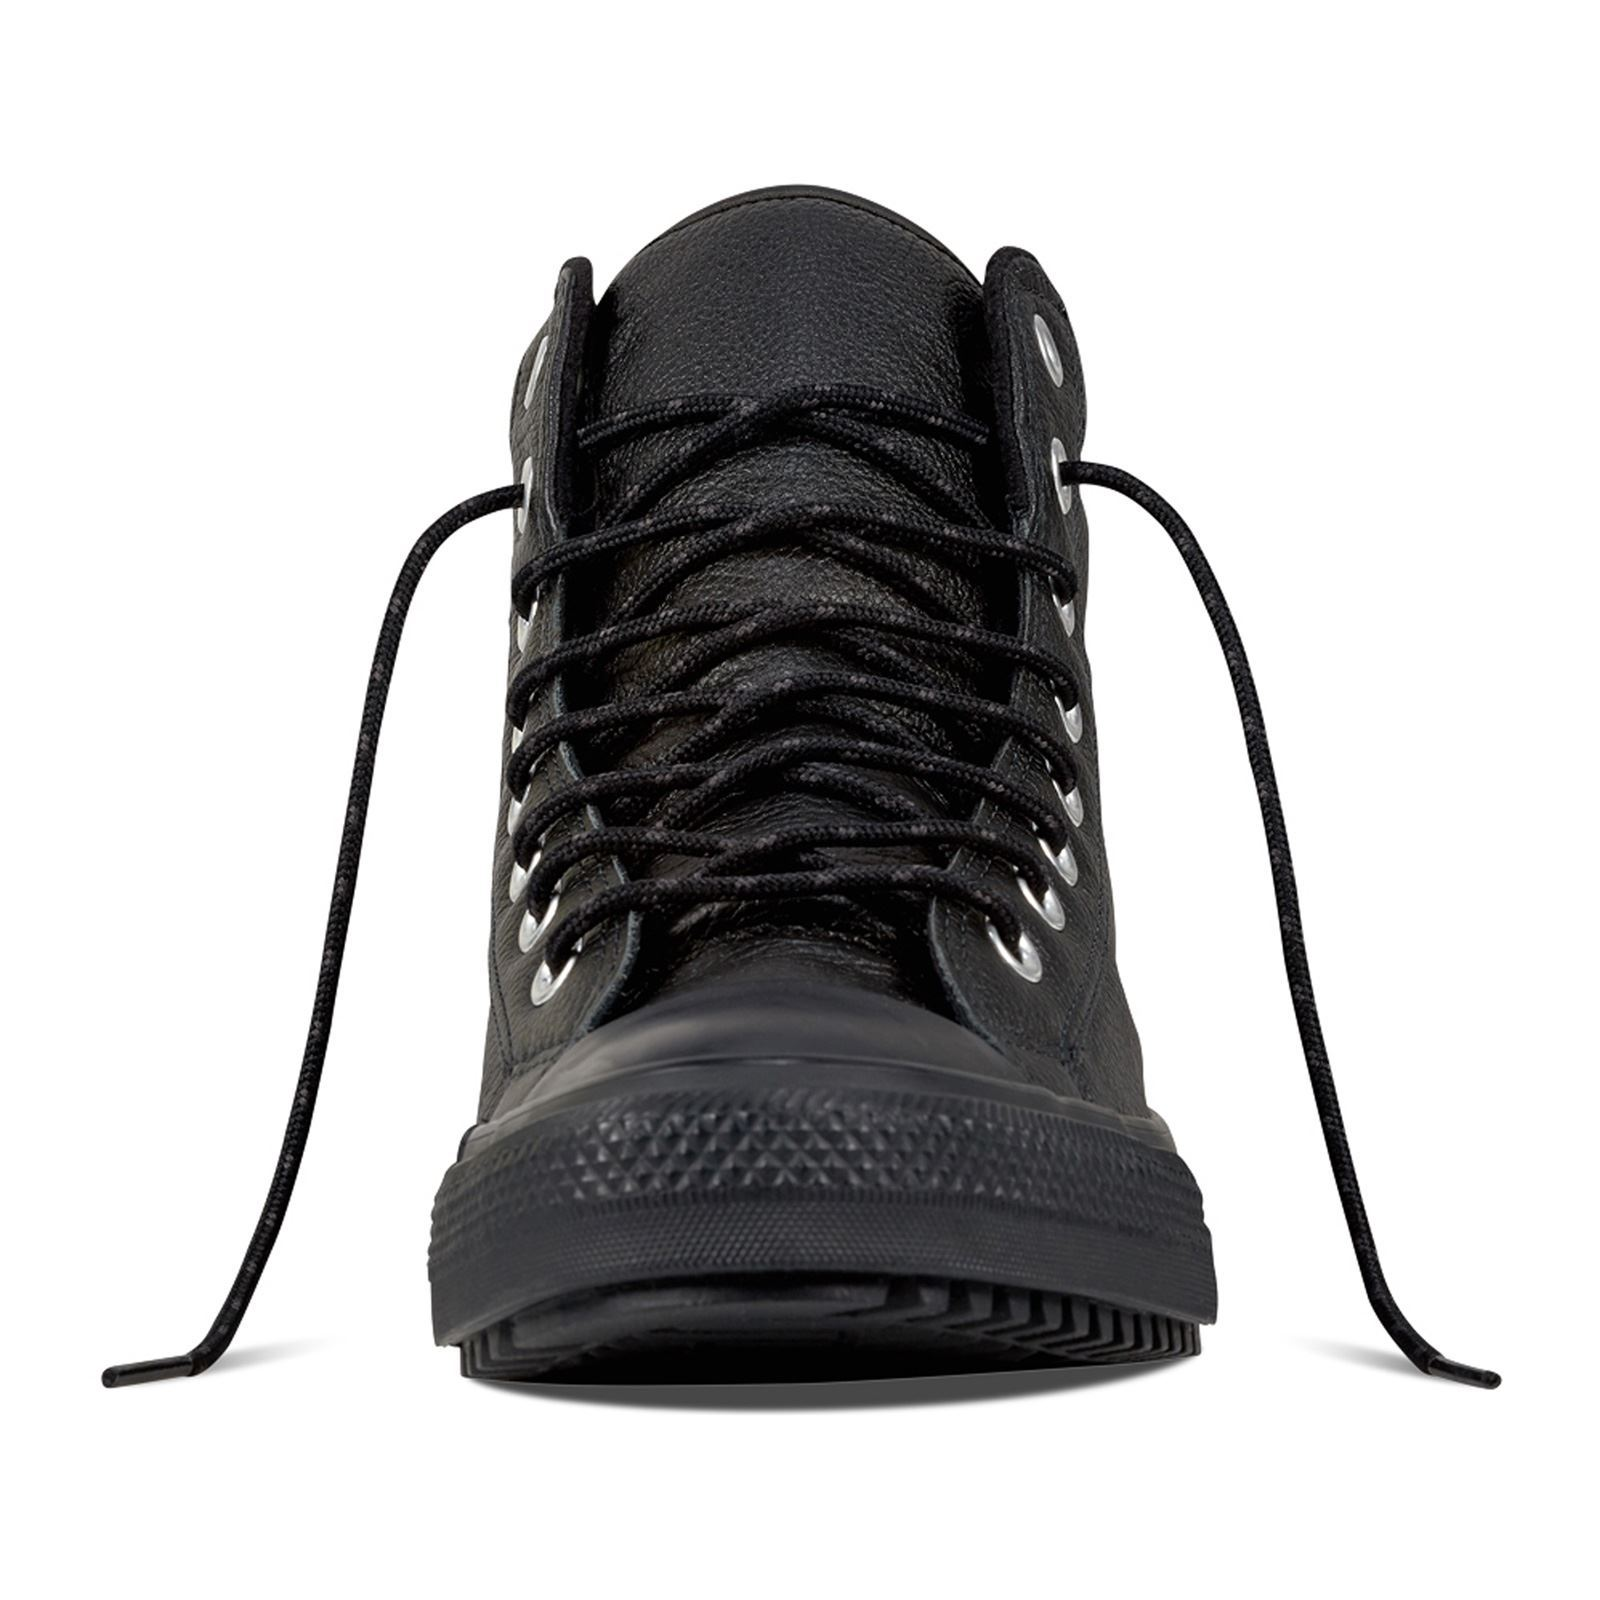 new products 9b4a0 603c8 CONVERSE Chuck Taylor All Star Boot PC - Baskets montantes en cuir - noir